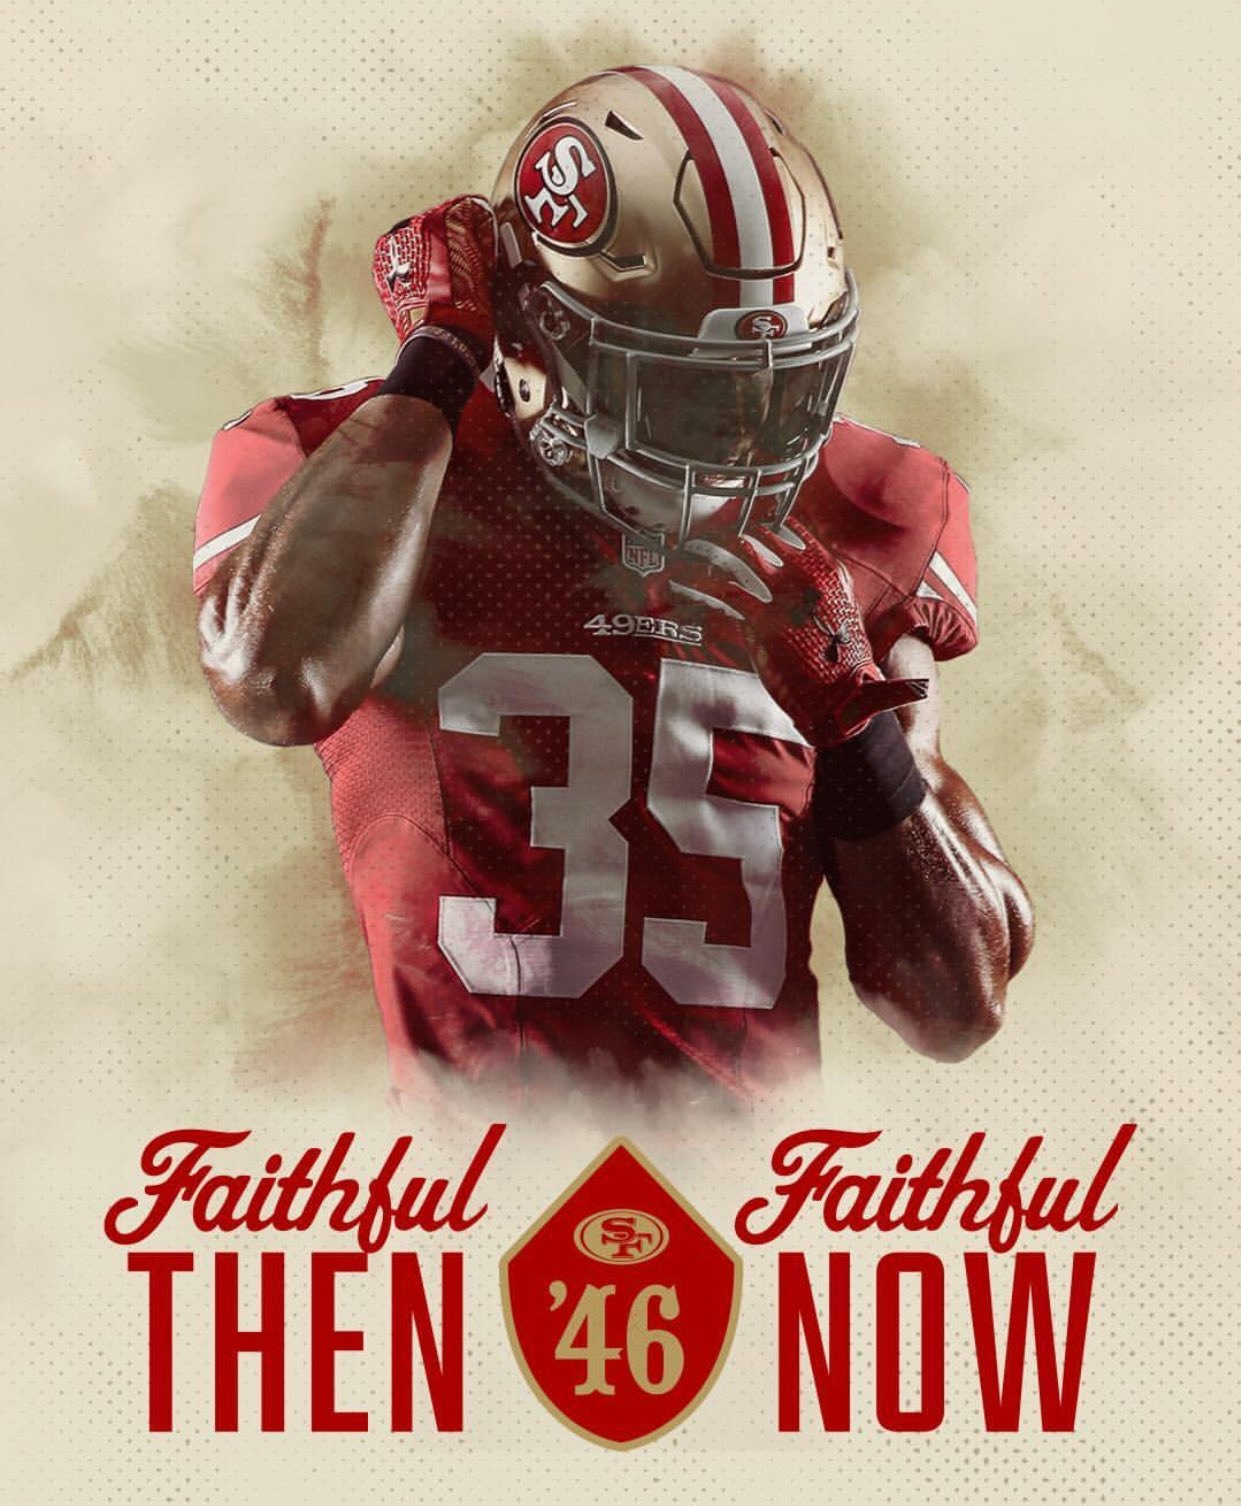 ������ #GoNiners https://t.co/1Qzh0XZ2oK